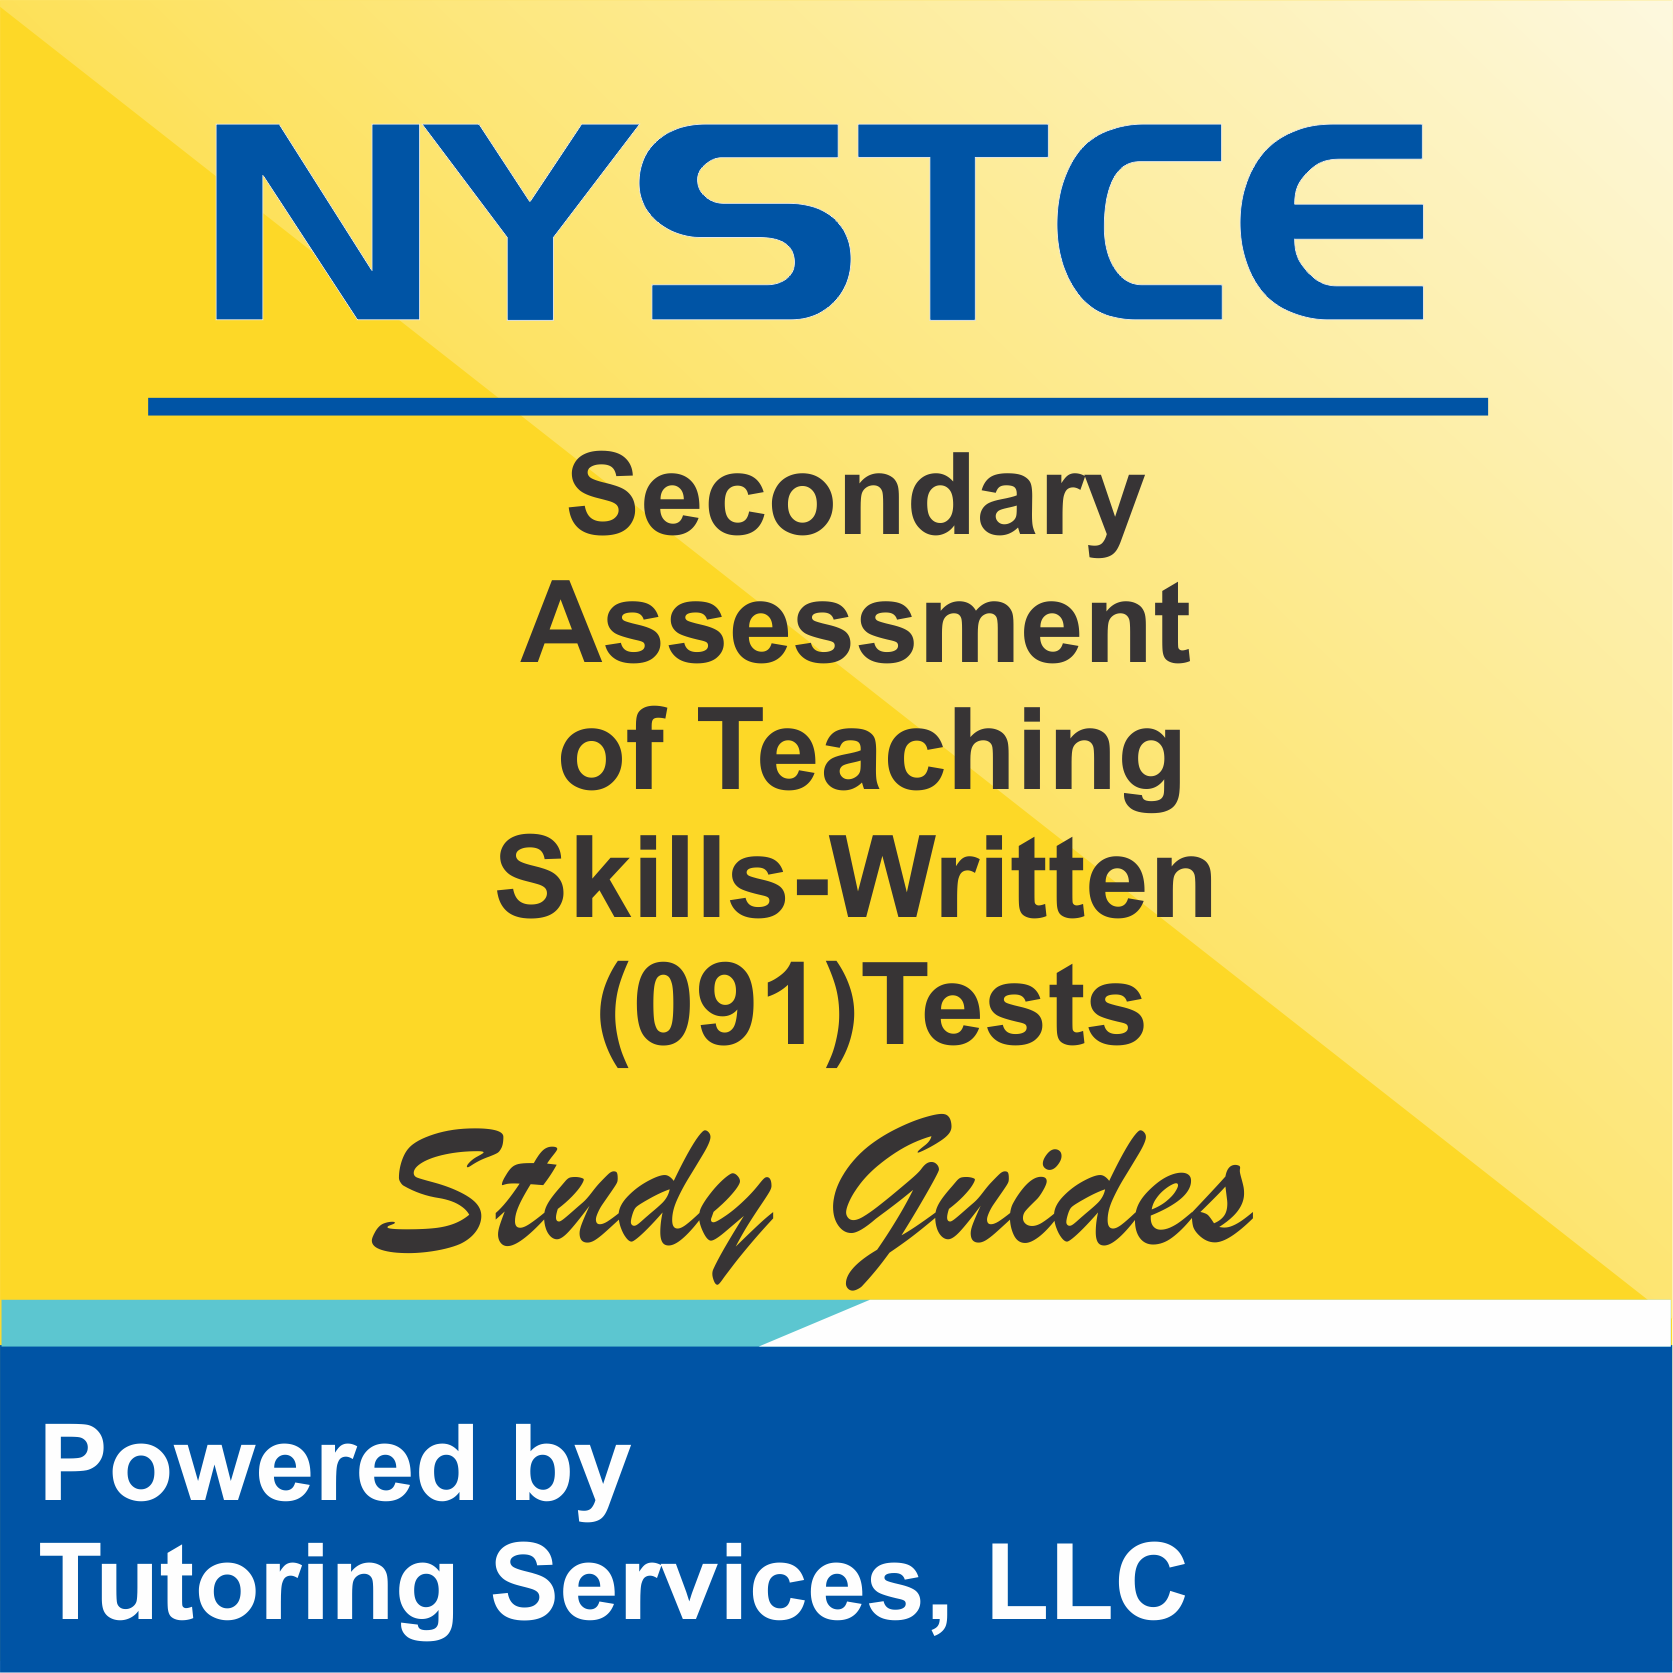 NYSTCE New York Public Teacher Test Details for Secondary Assessment of Teaching Skills-Written 091